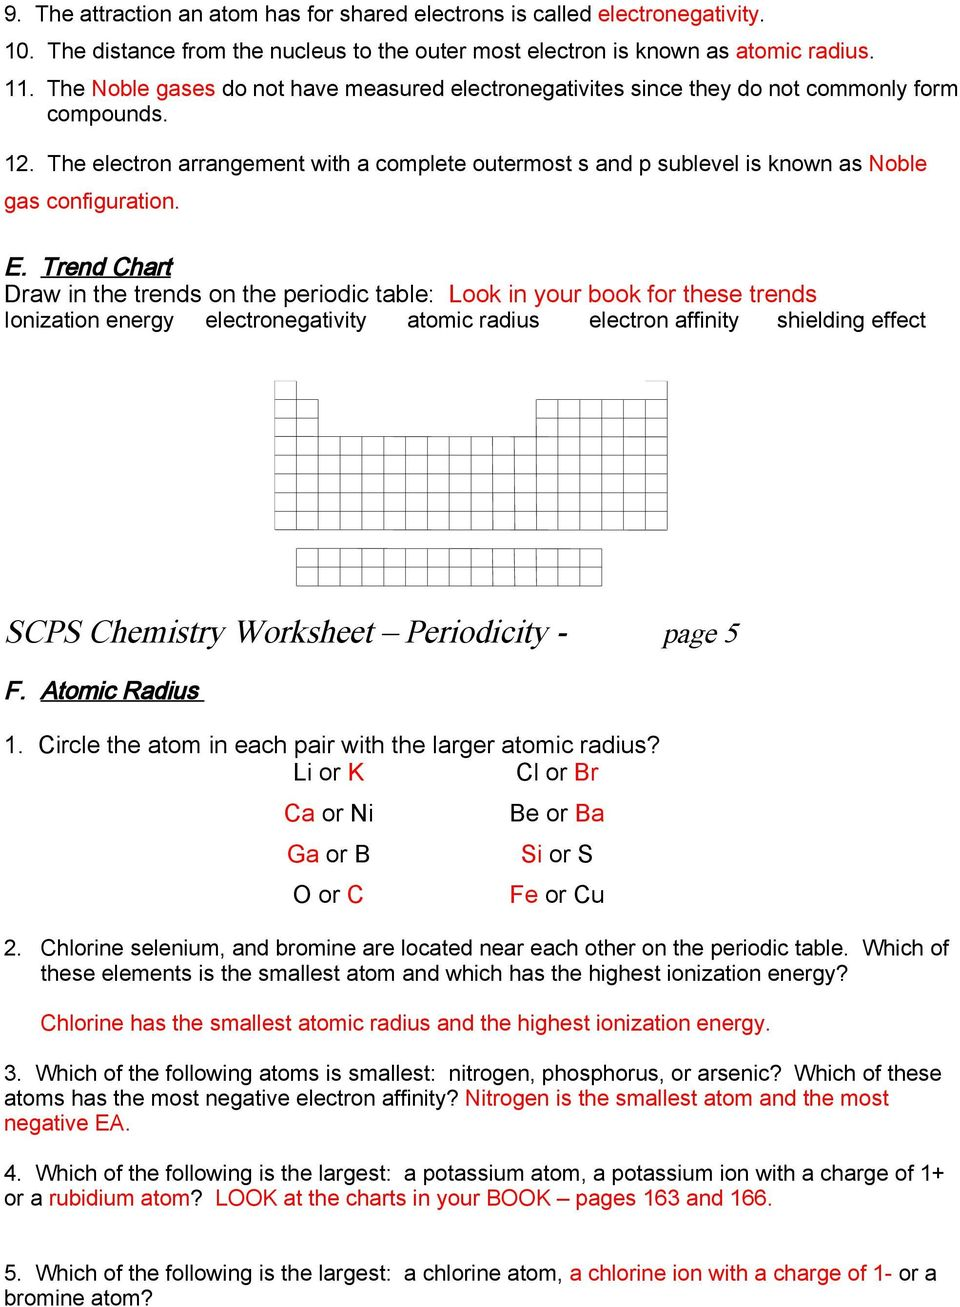 Scps chemistry worksheet periodicity a periodic table 1 which are the electron arrangement with a complete outermost s and p sublevel is known as noble gas urtaz Gallery